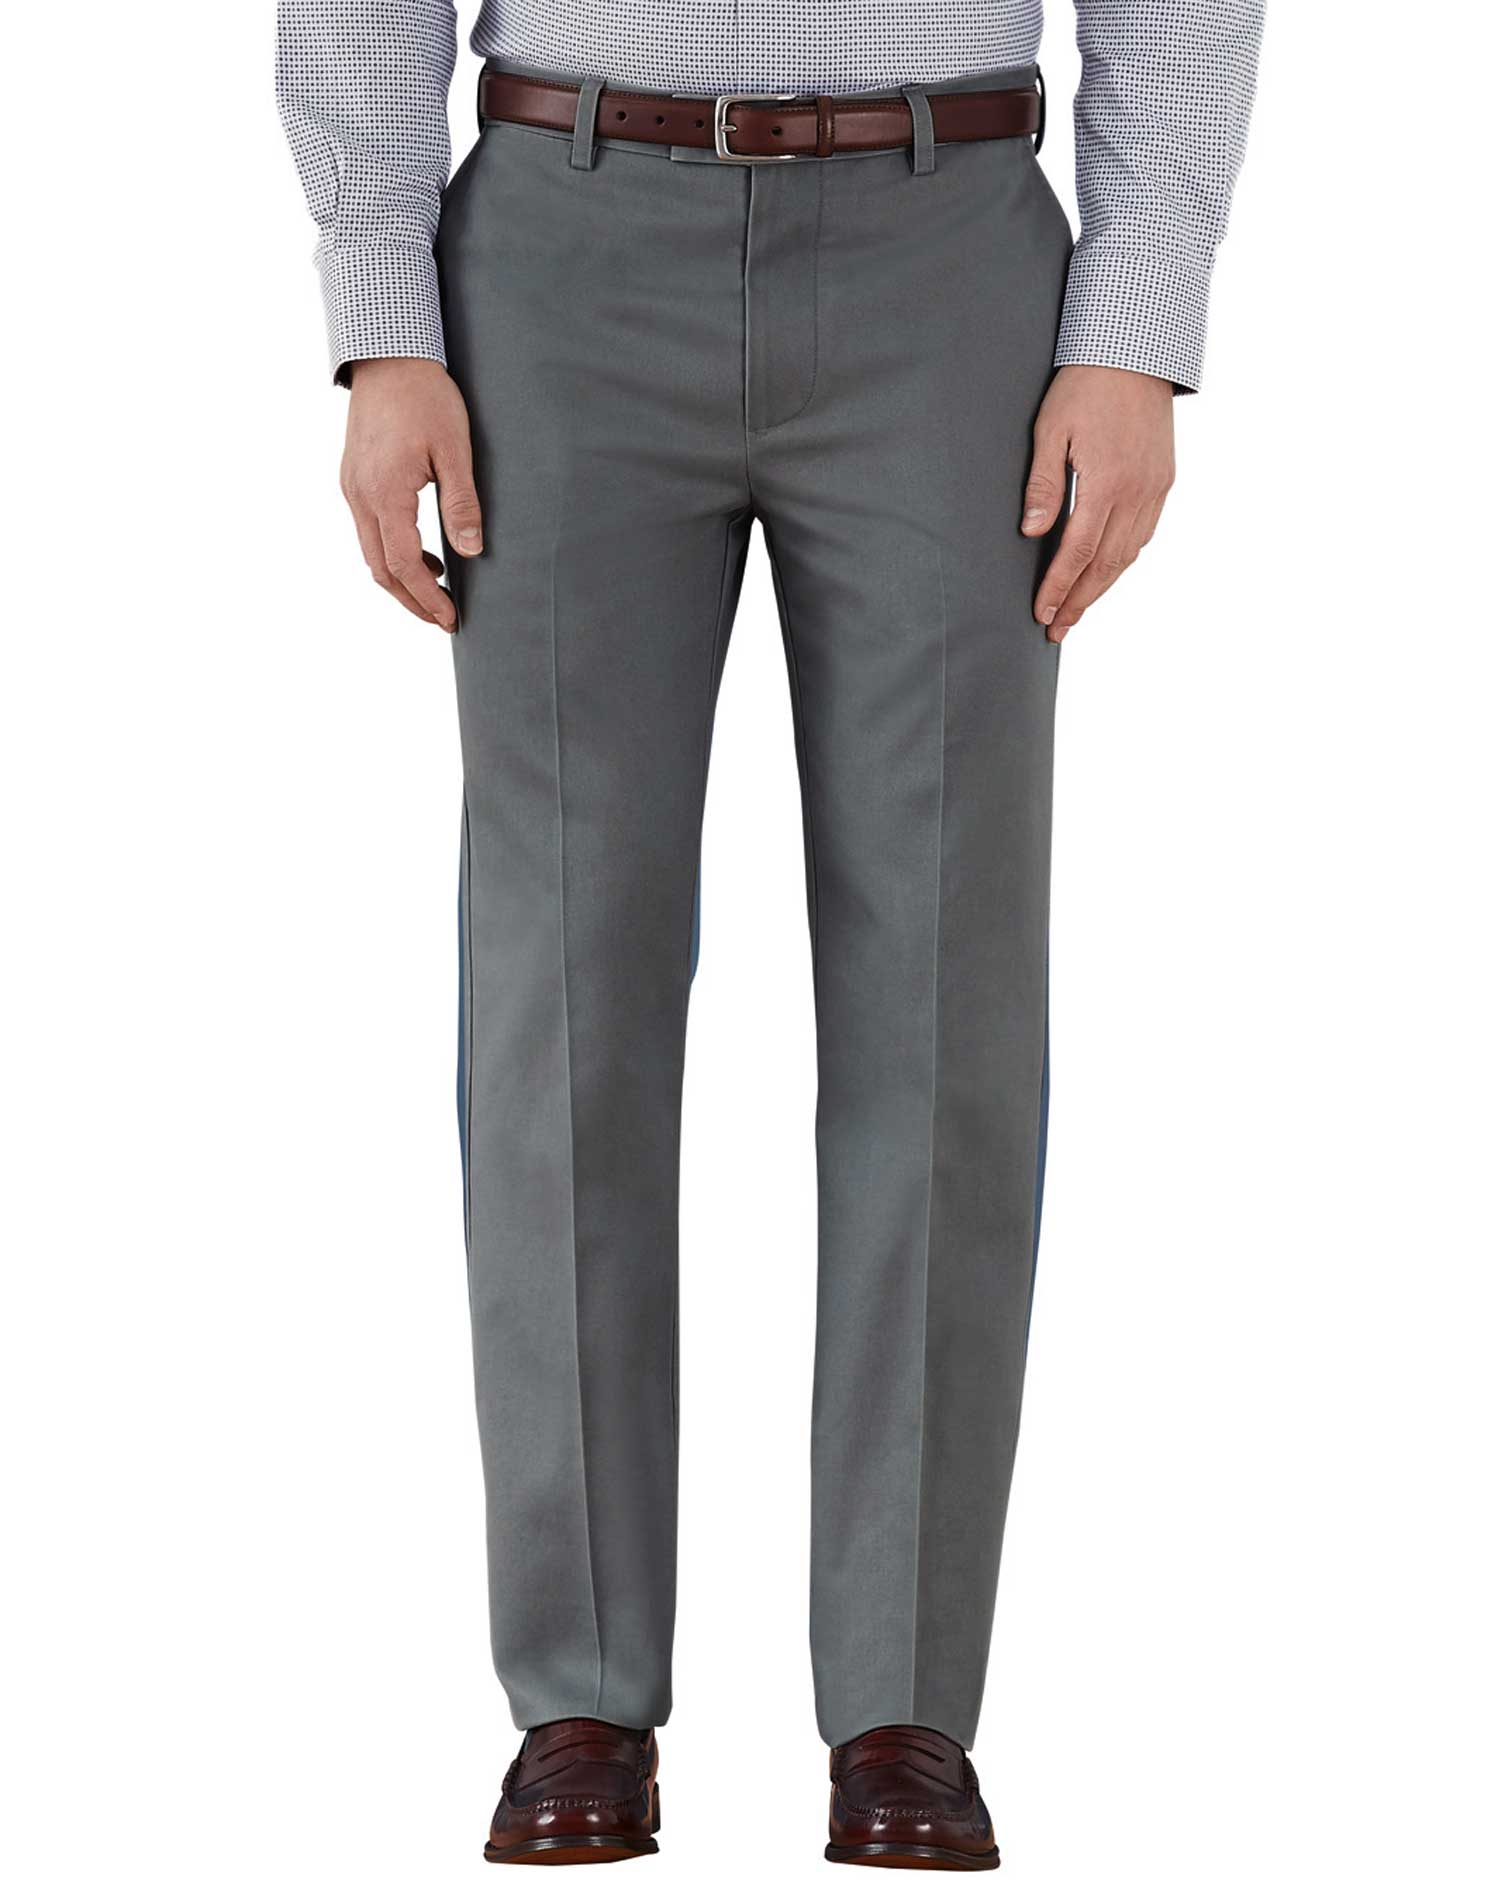 Grey Slim Fit Flat Front Non-Iron Cotton Chino Trousers Size W30 L32 by Charles Tyrwhitt